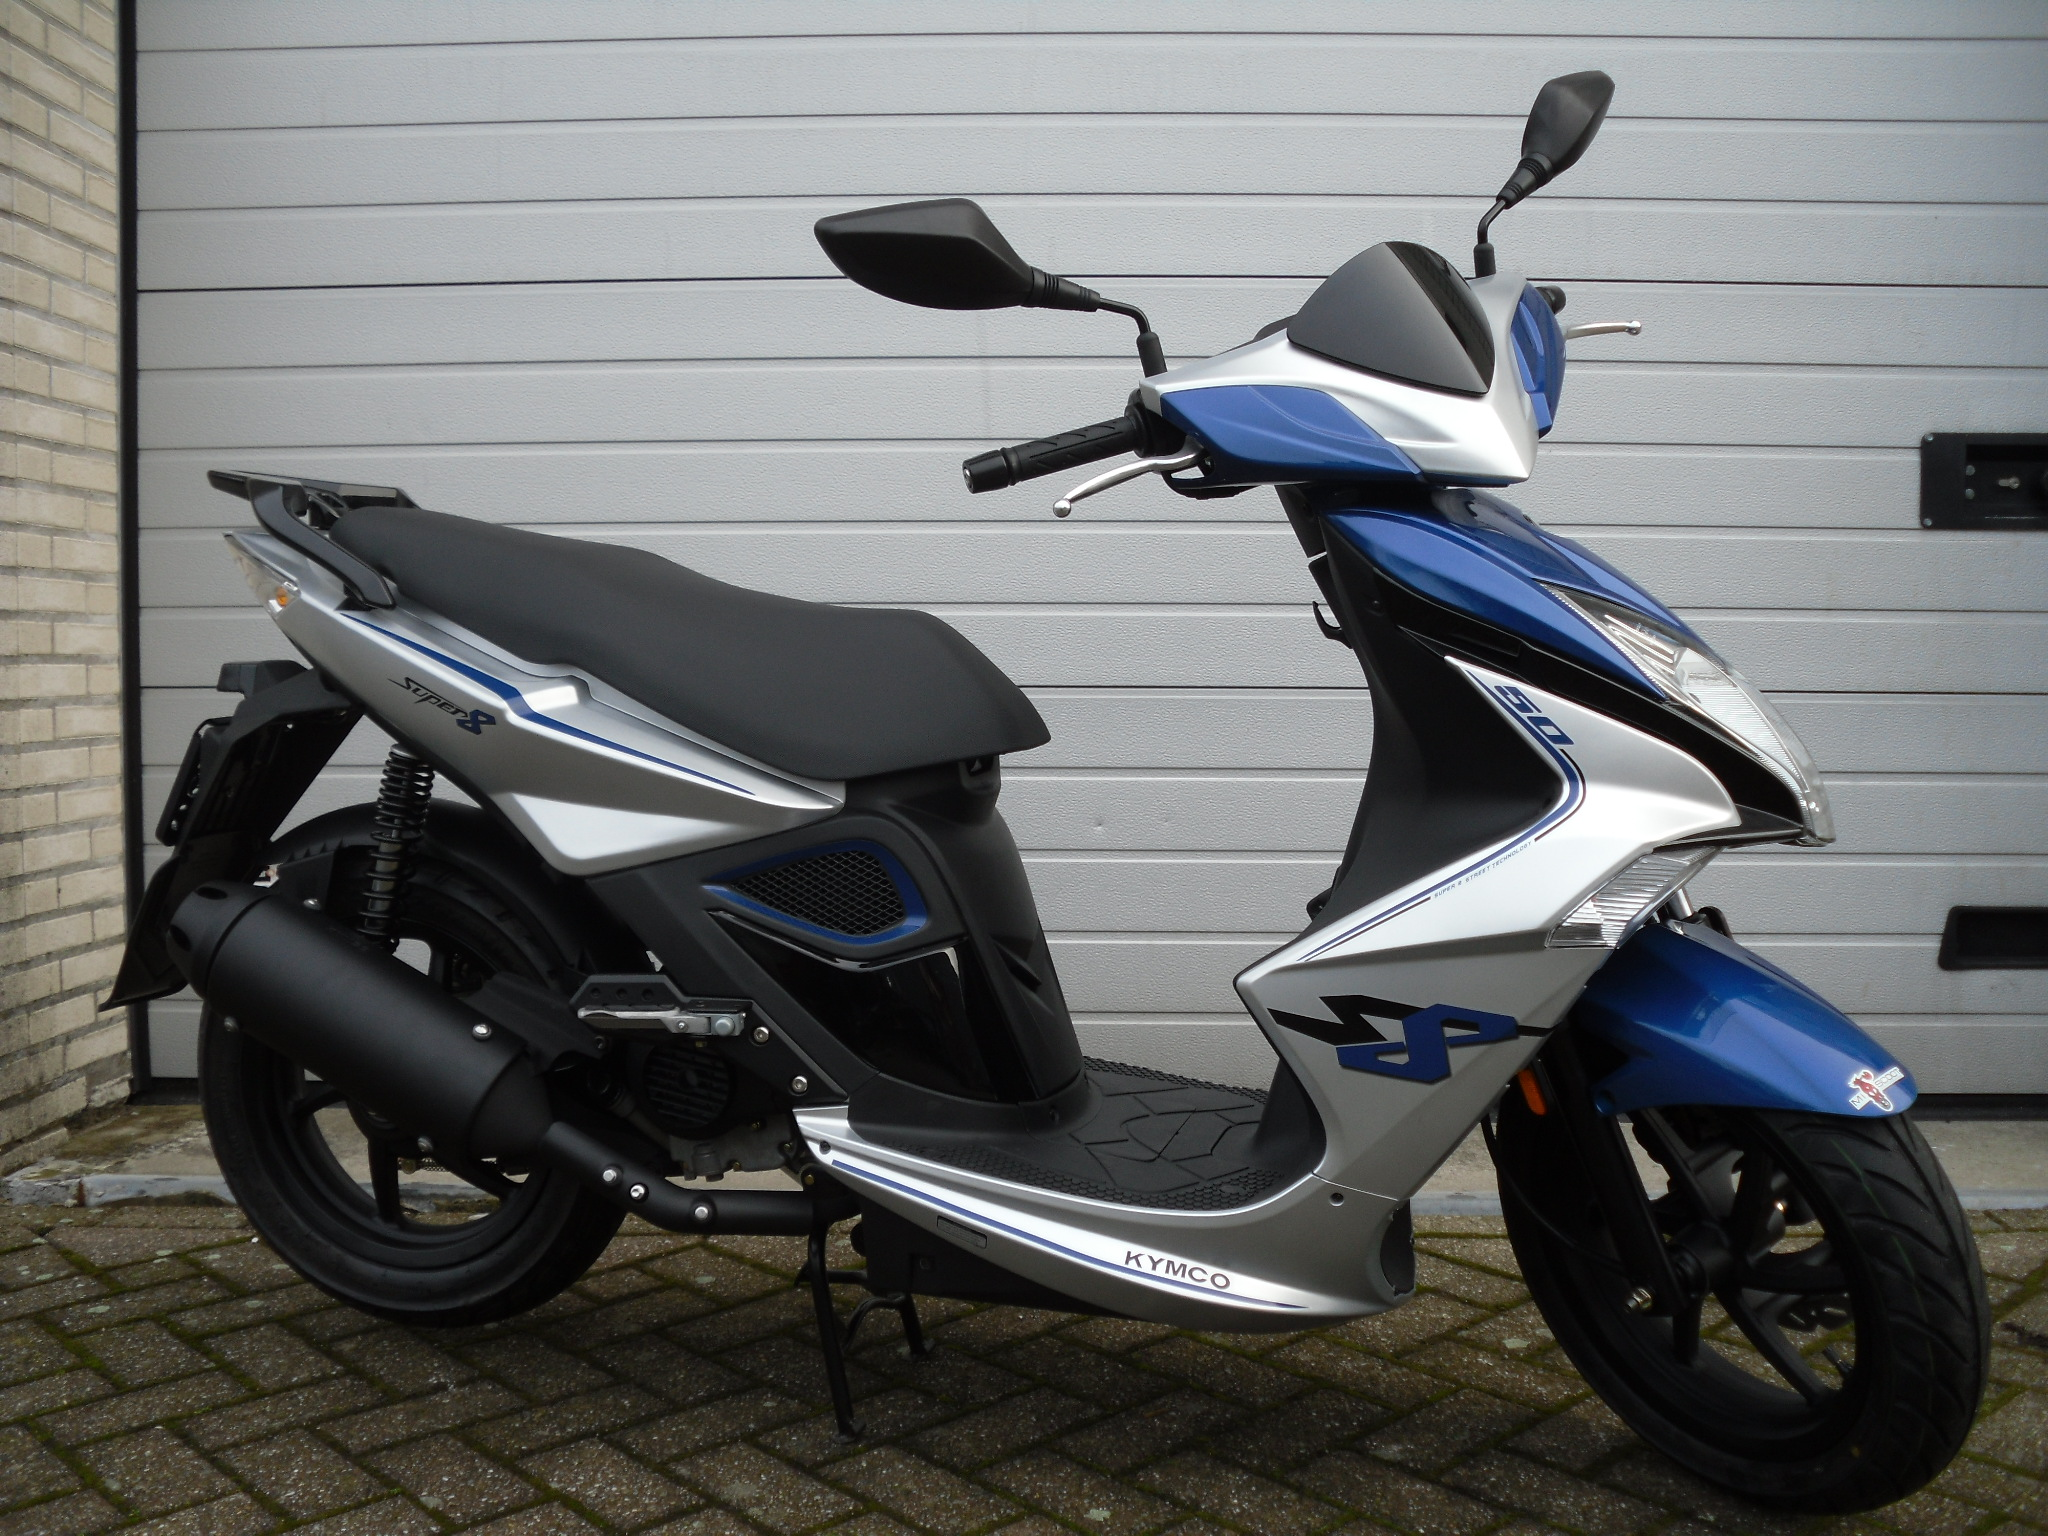 kymco super 8 street sportief snorscooter bromscooter